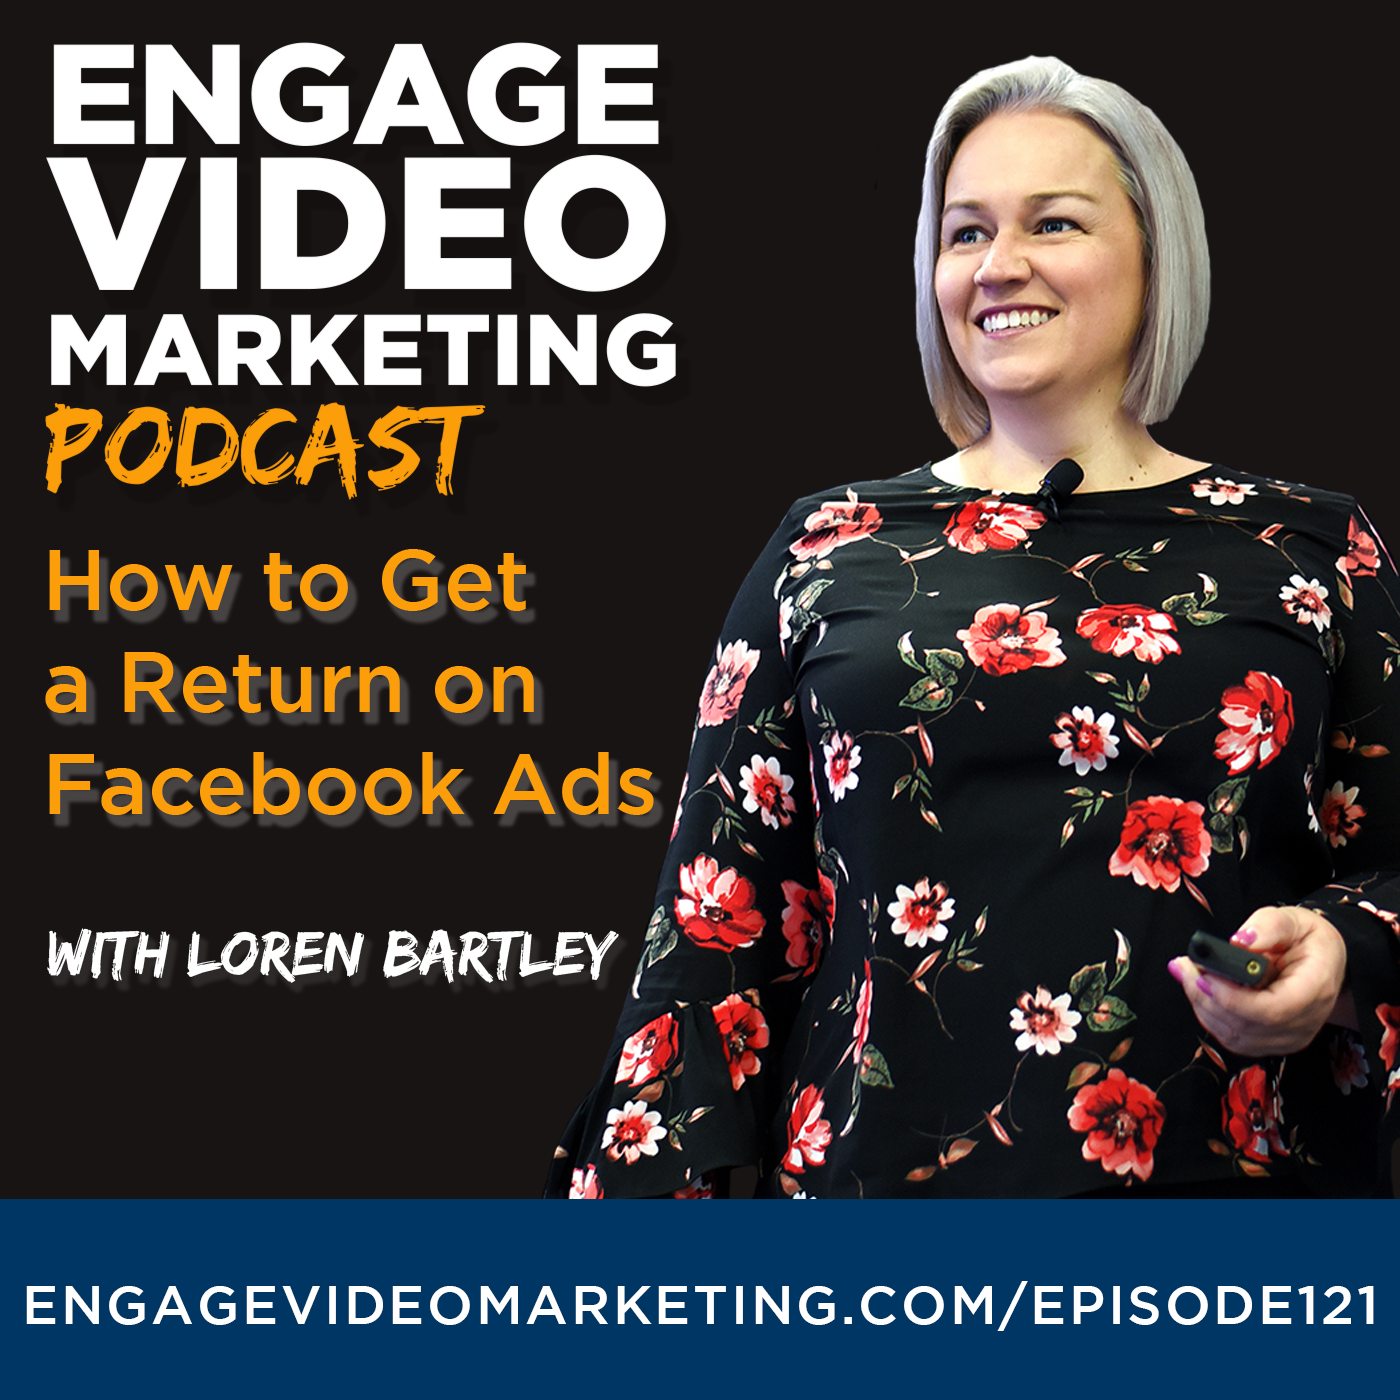 How to Get A Return on Facebook Ads with Loren Bartley